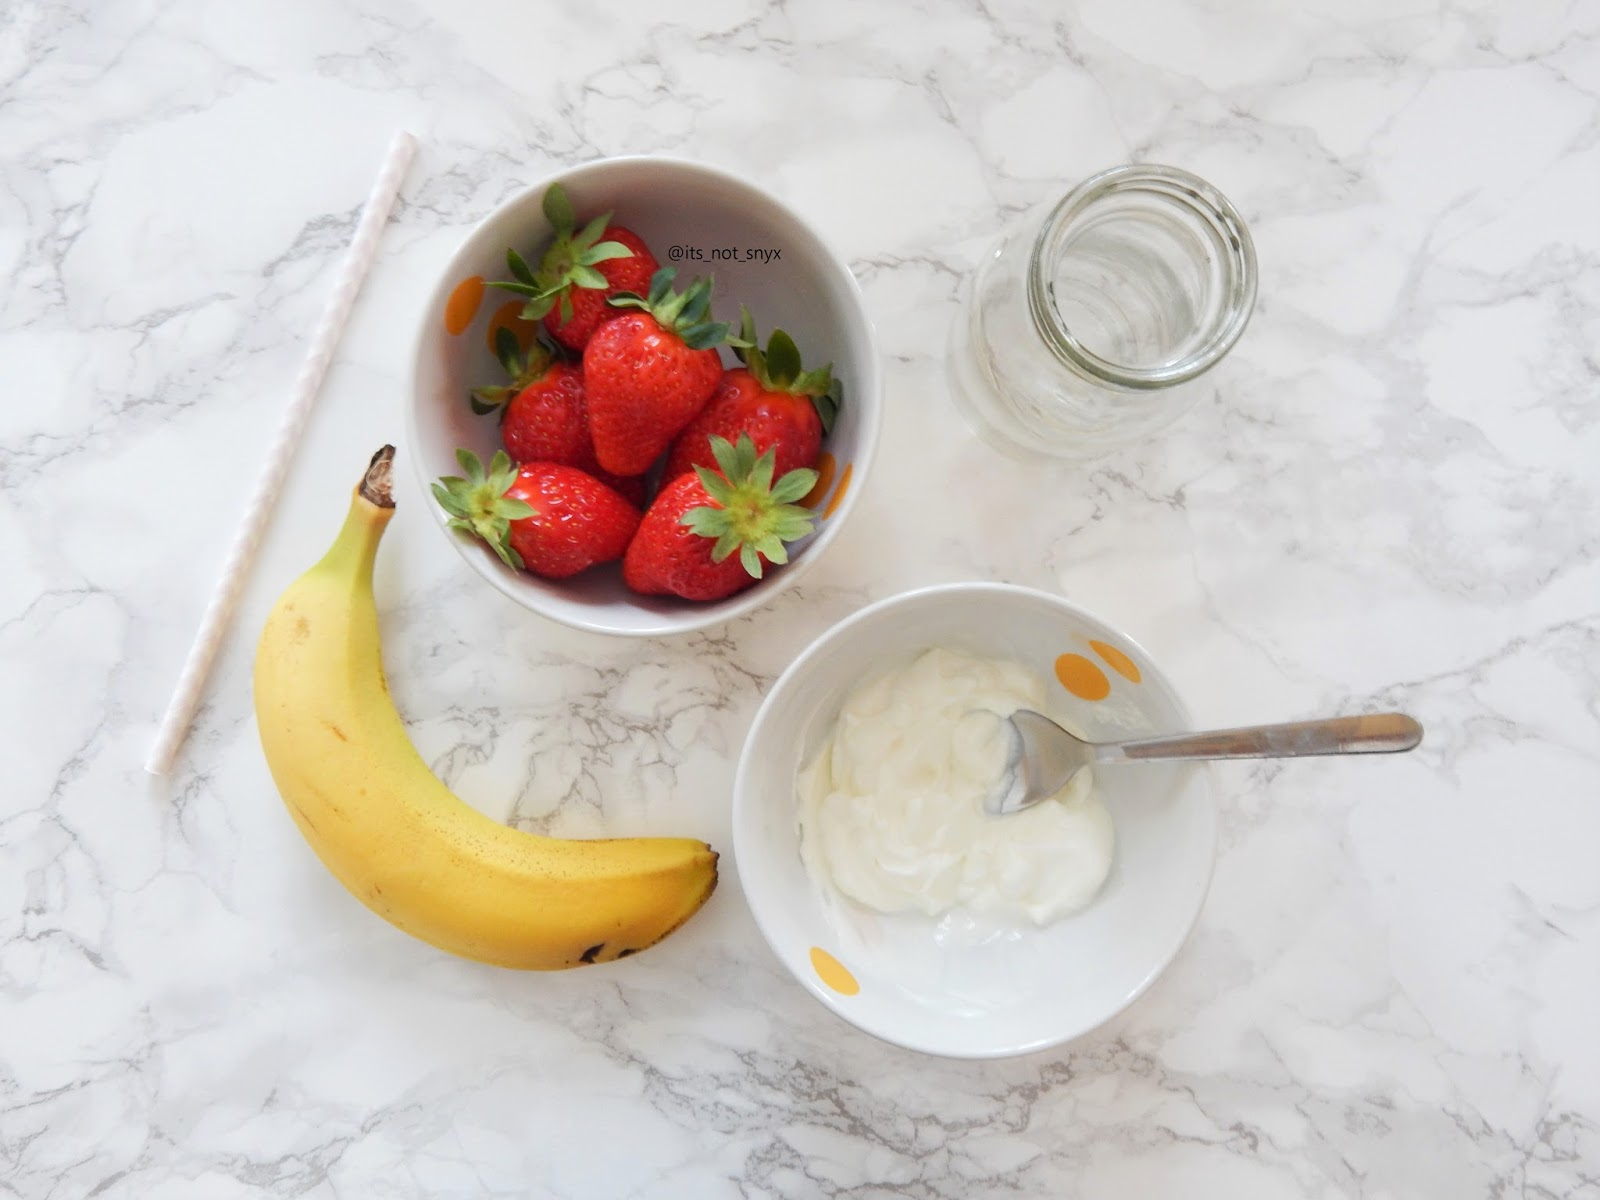 Healthy snacks and drinks ideas ♡ - Just Snyx